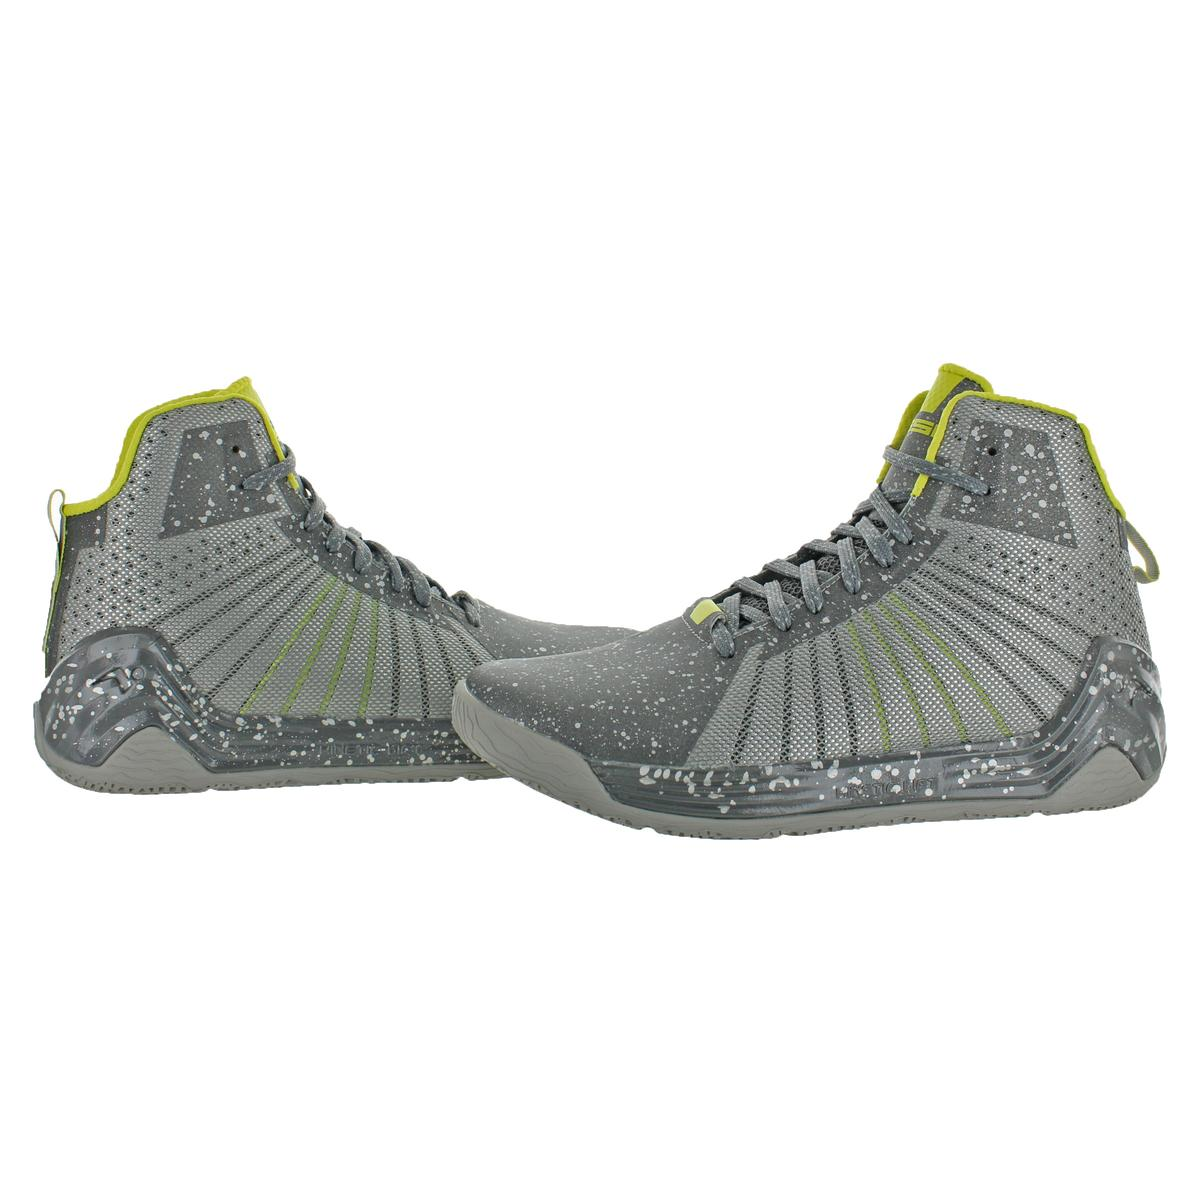 5f9b7c066fe Tesh Trooper Men Round Toe Synthetic Gray Basketball Shoe 11. About this  product. Picture 1 of 4  Picture 2 of 4  Picture 3 of 4 ...